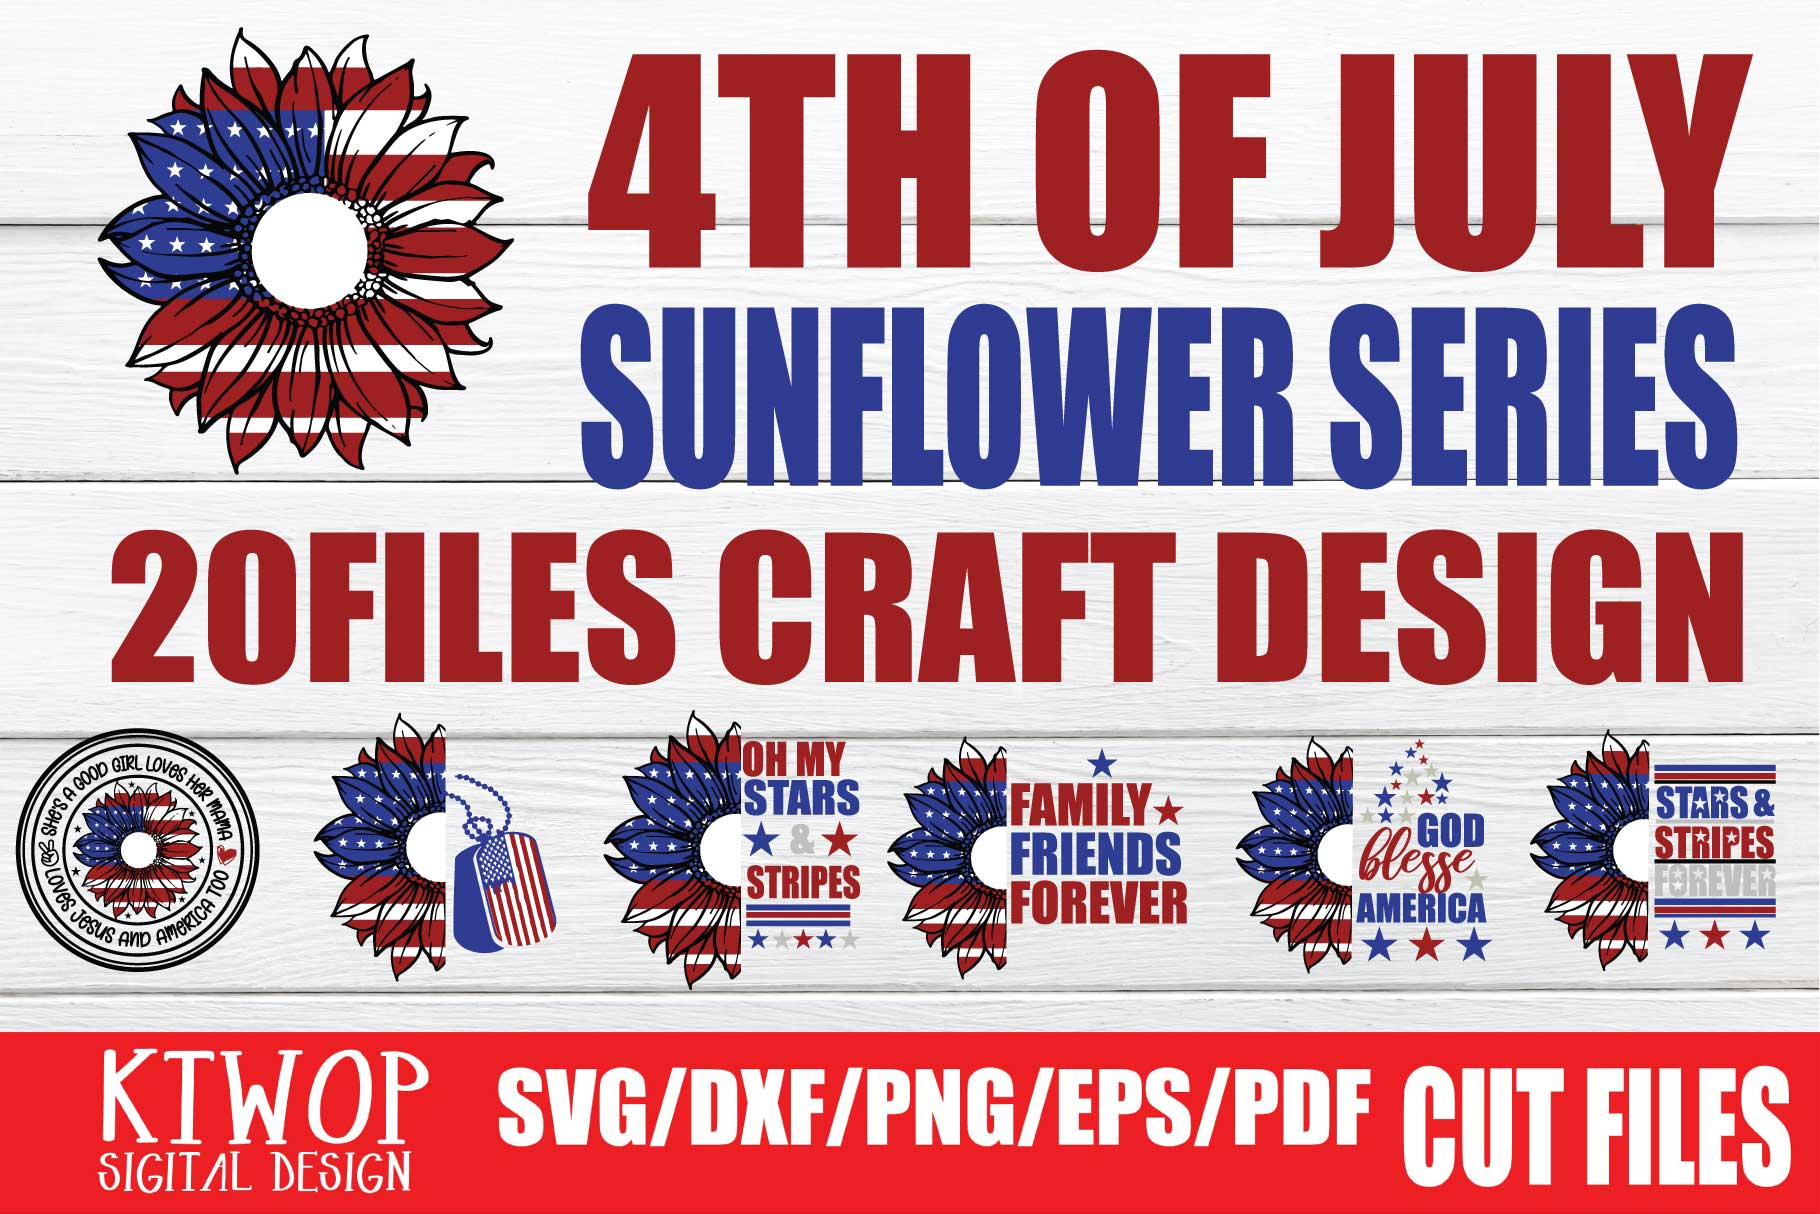 Download Free Patriotic 4th Of July 20 Files Bundle Graphic By Ktwop for Cricut Explore, Silhouette and other cutting machines.